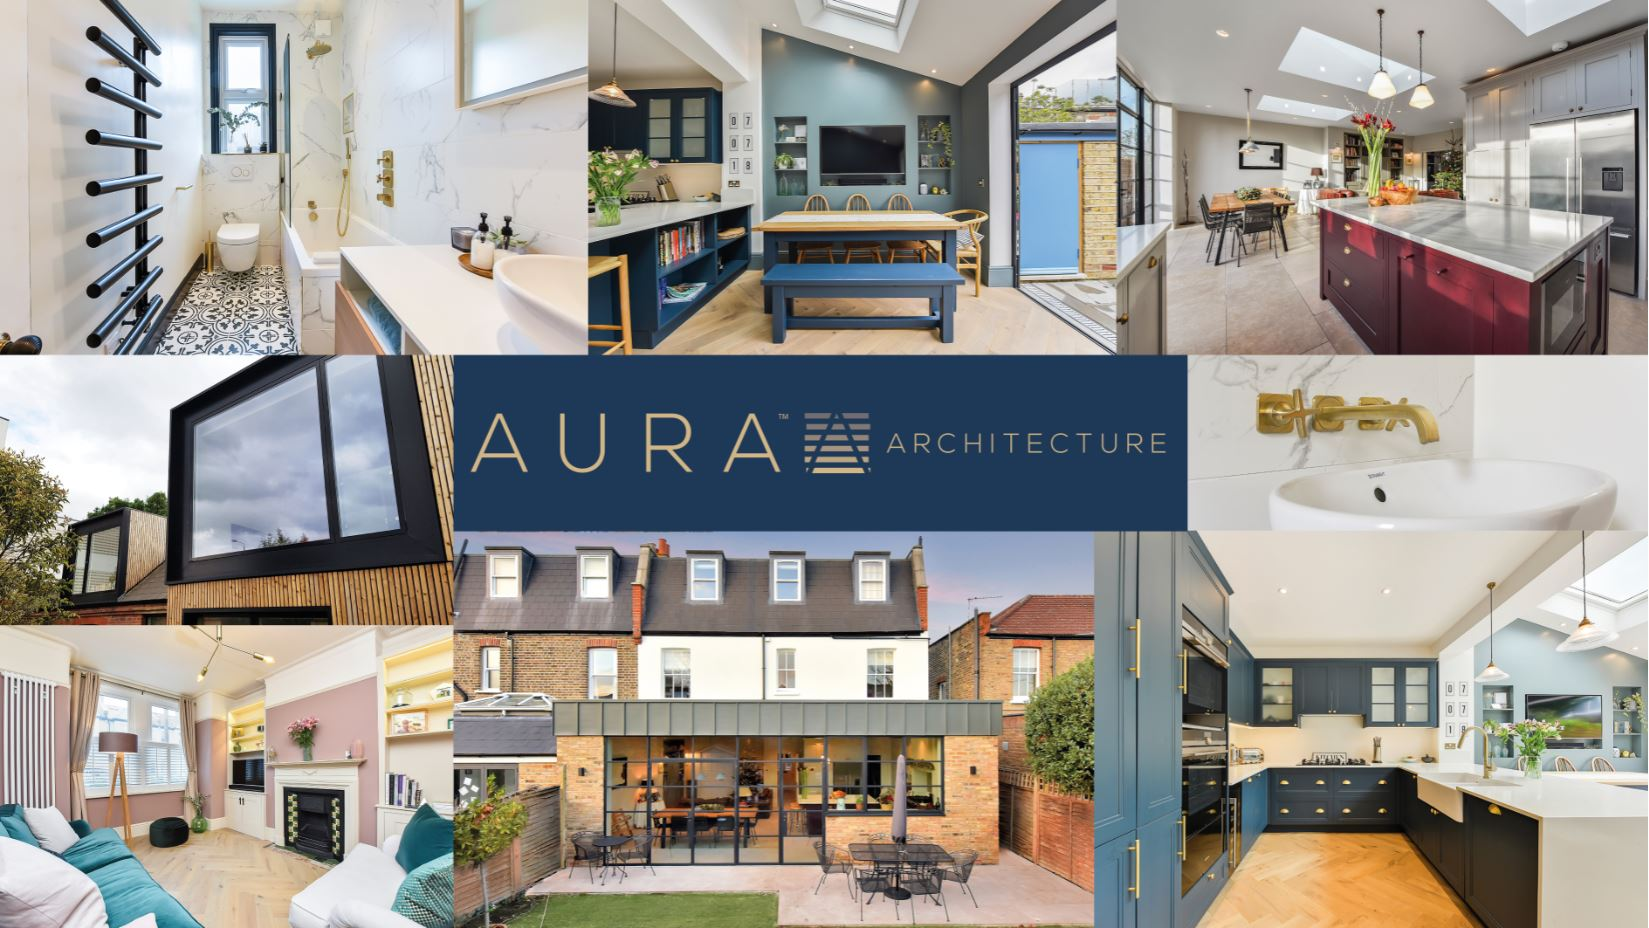 AURA architects London Home Counties